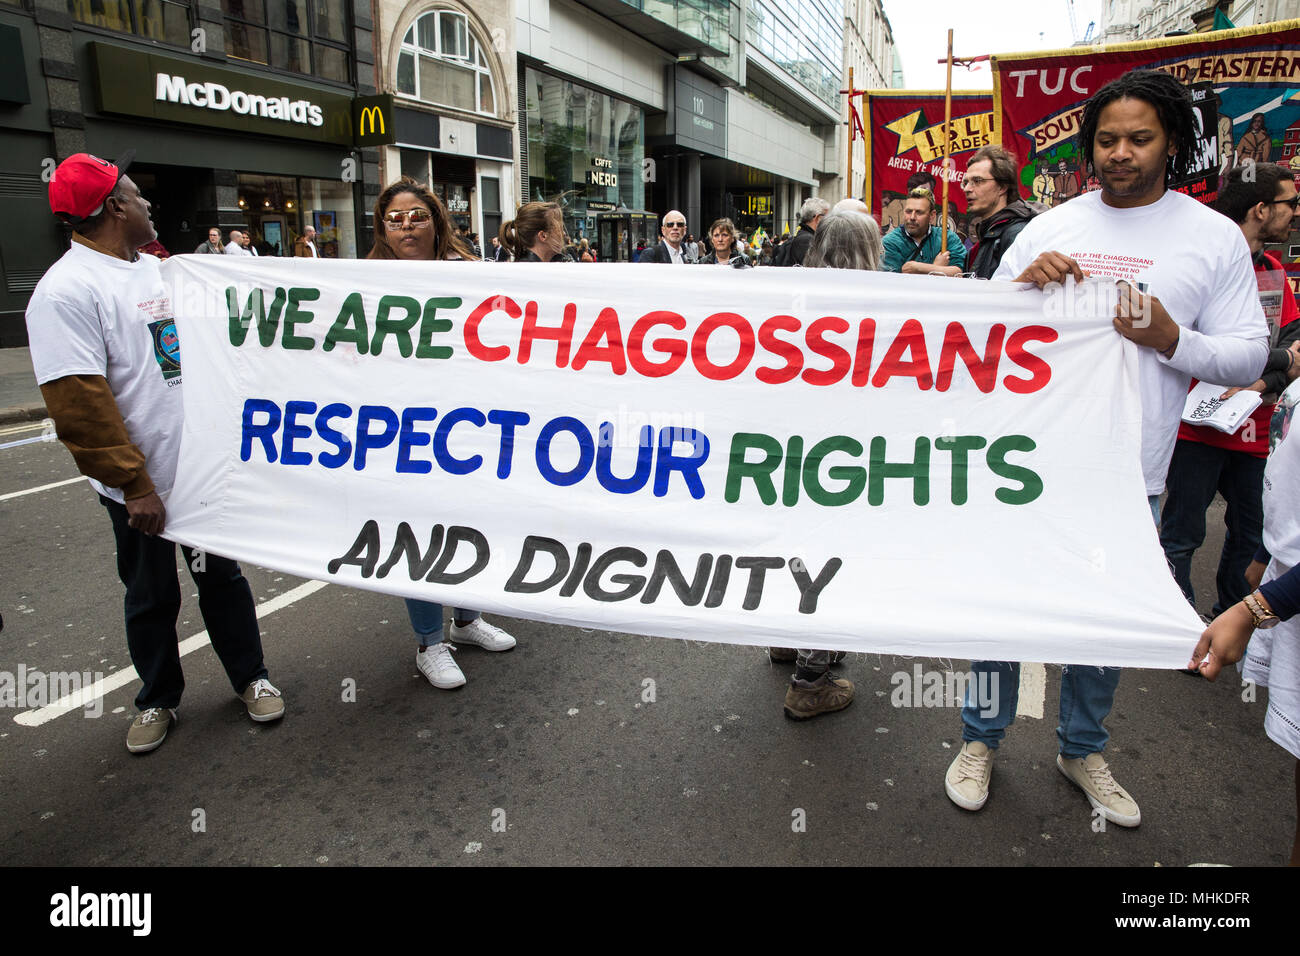 London, UK. 1st May, 2018. Representatives of the Chagos Islands take part in the annual May Day march to mark International Workers' Day. Credit: Mark Kerrison/Alamy Live News - Stock Image